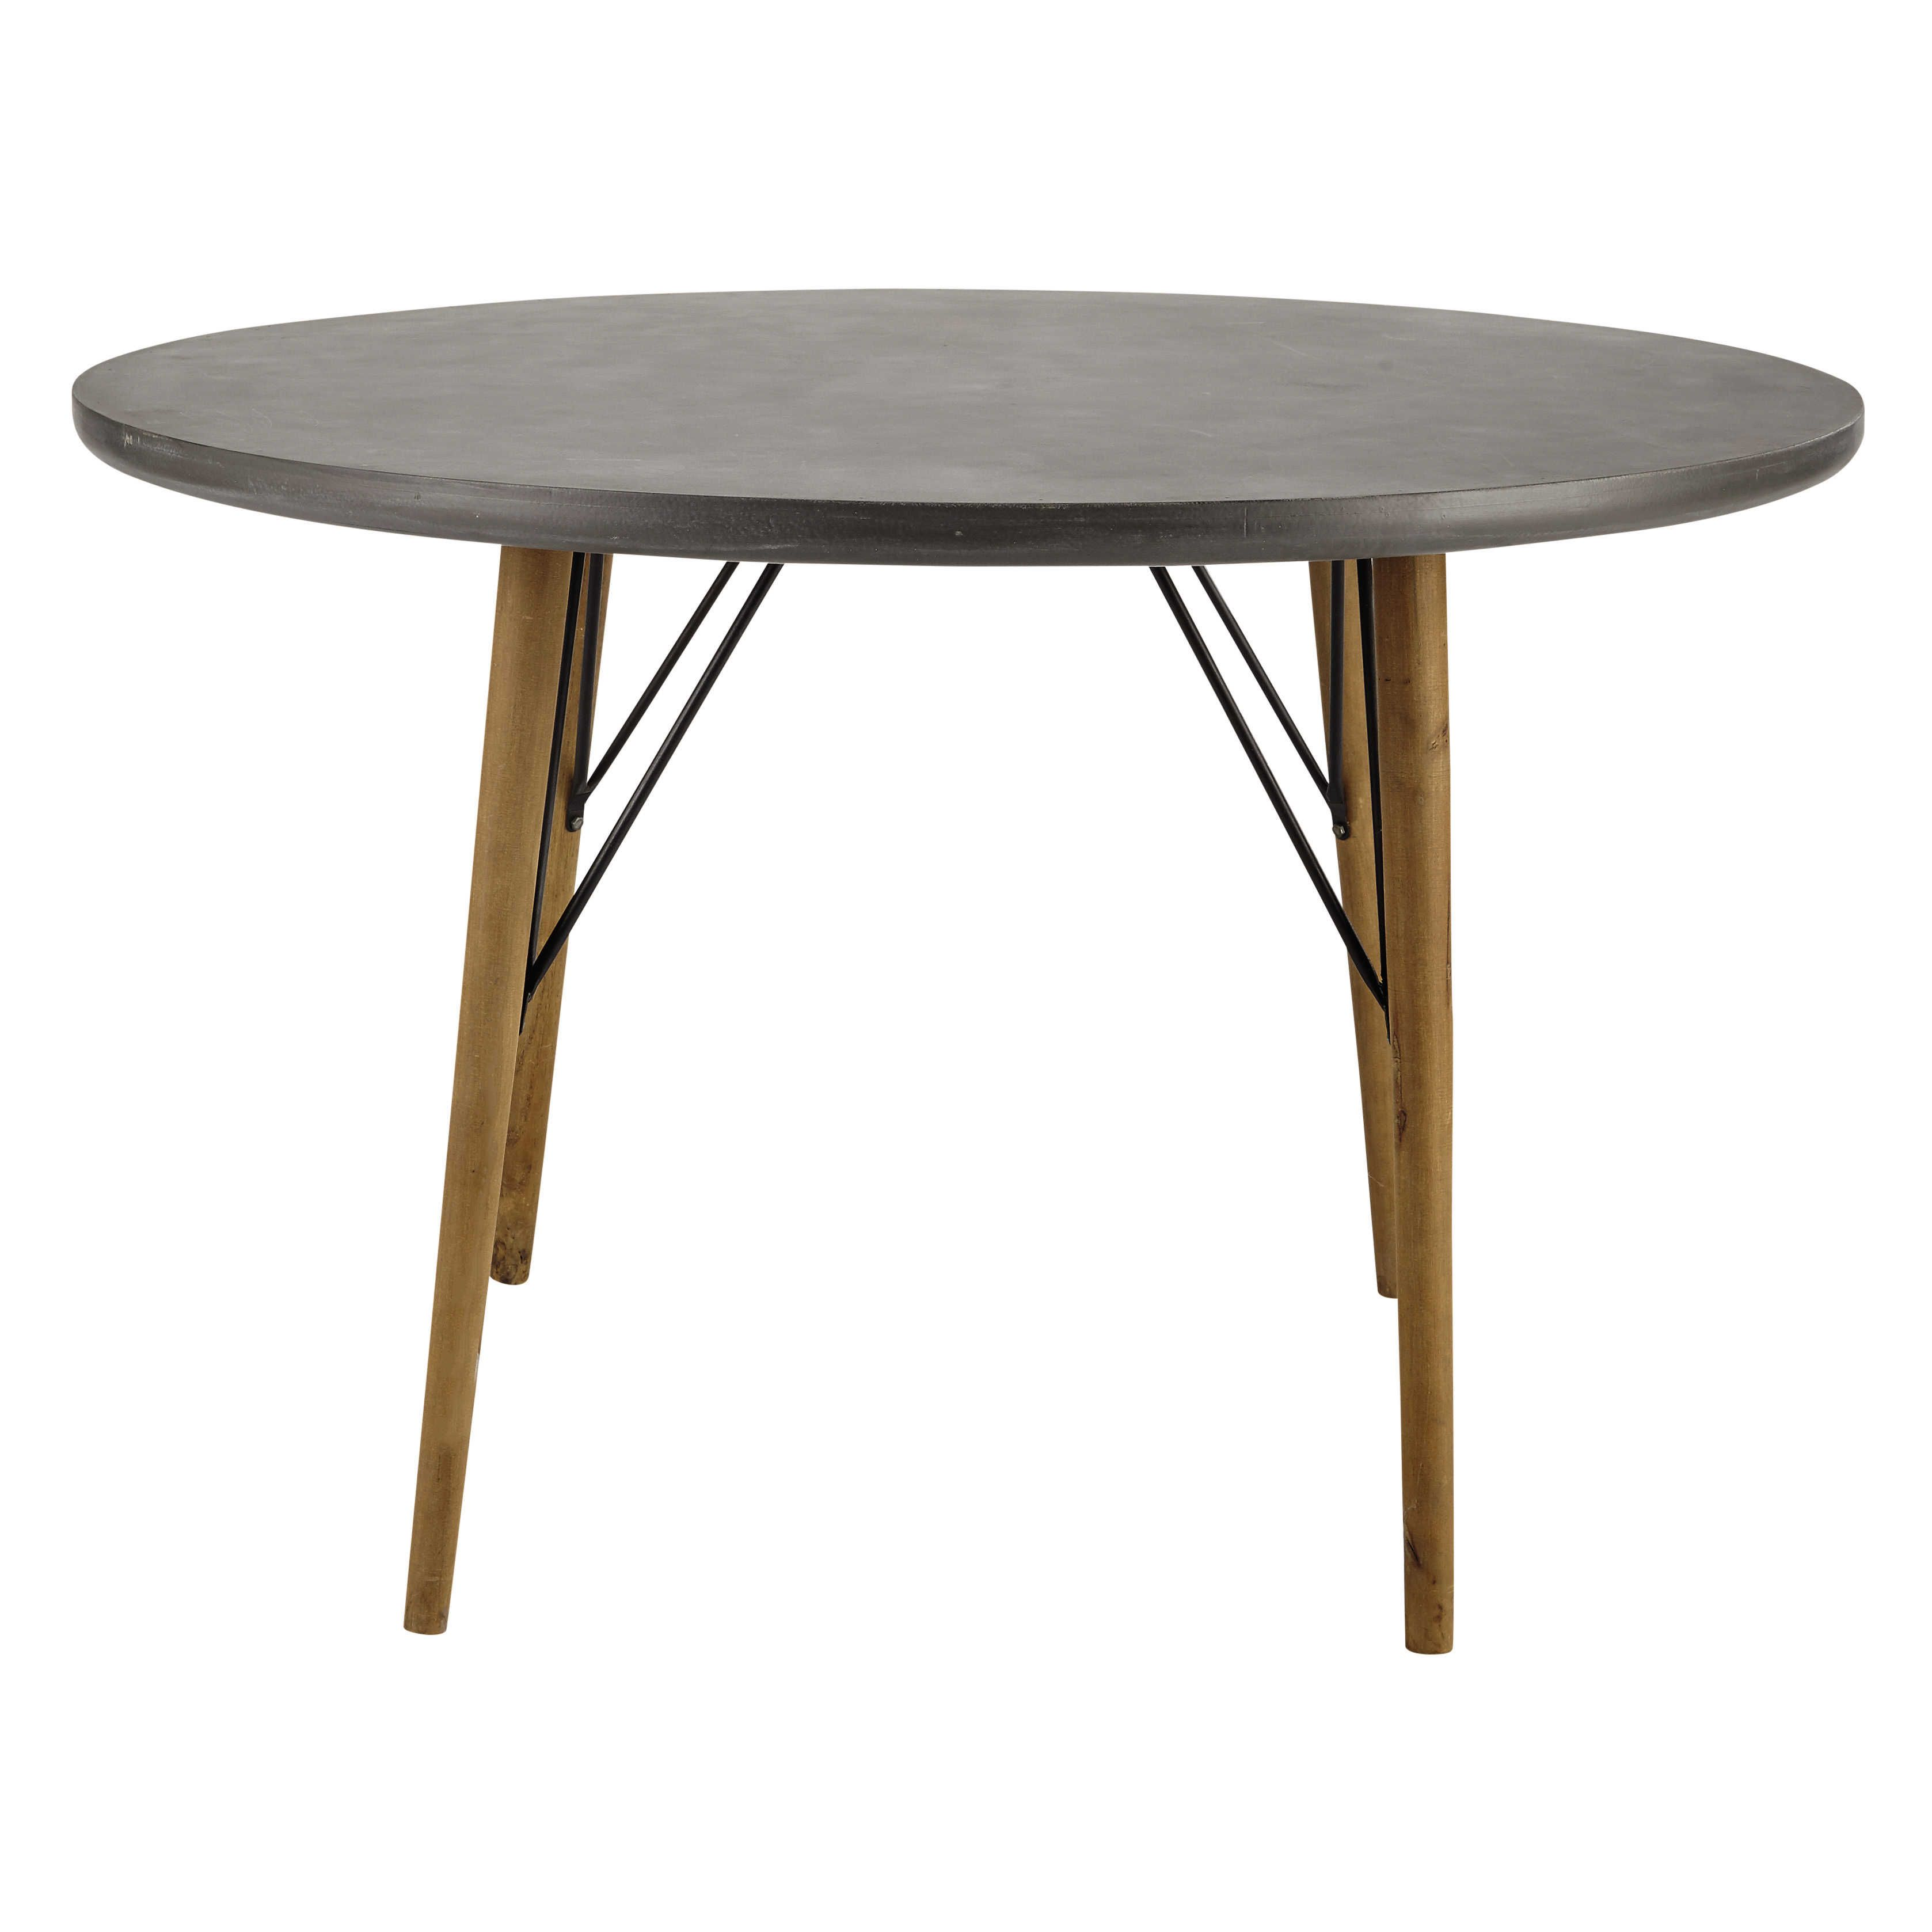 Wooden round dining table d 120cm cleveland table salle for Table de salle a manger maison du monde